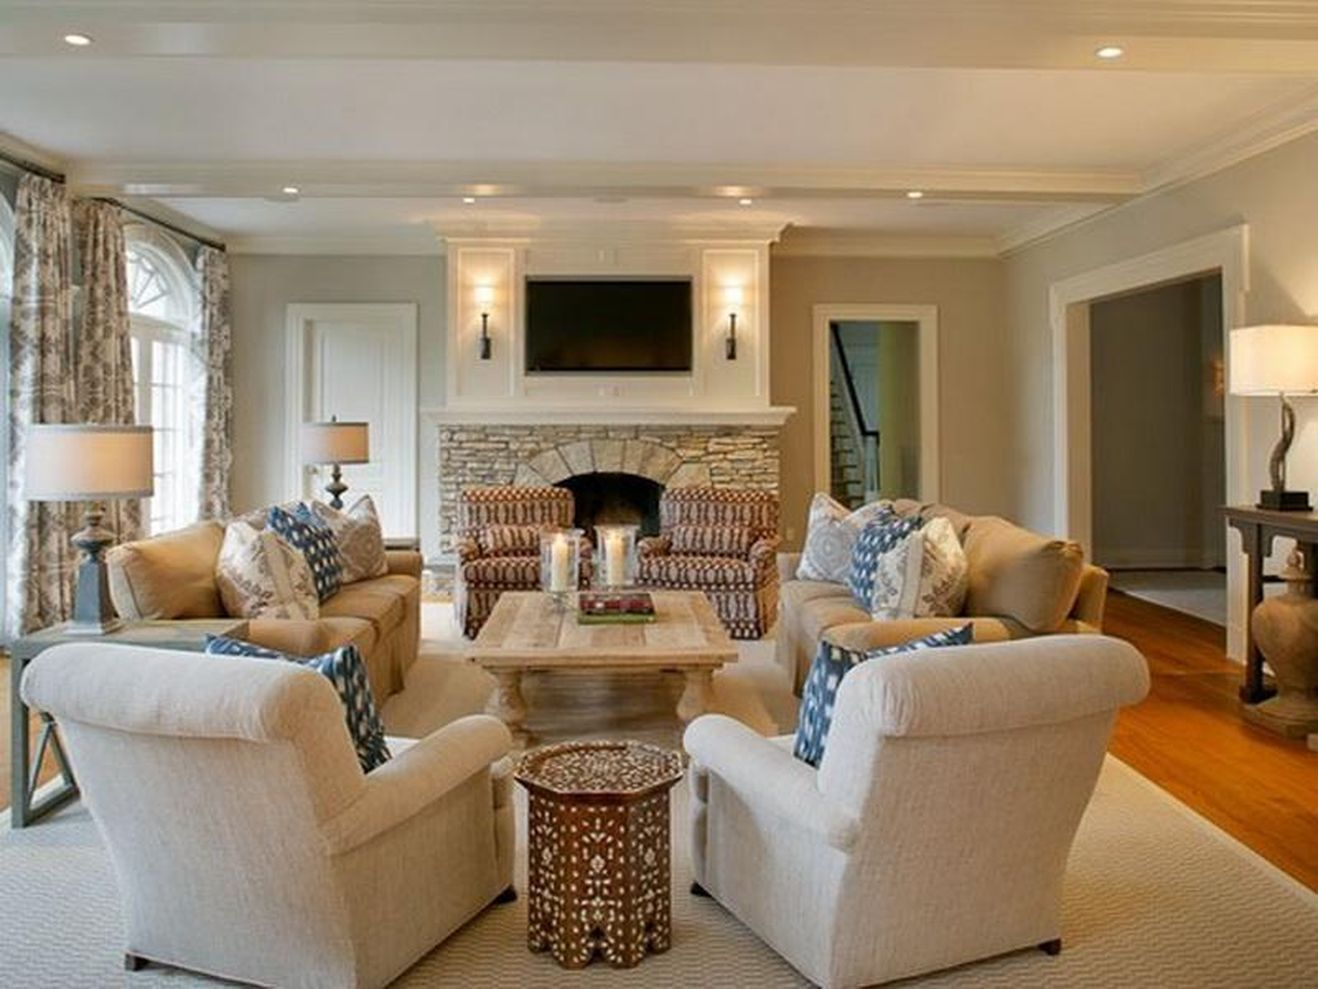 61 Simple Living Room Design Ideas With Tv Roundecor Rectangular Living Rooms Long Living Room Elegant Living Room Furniture